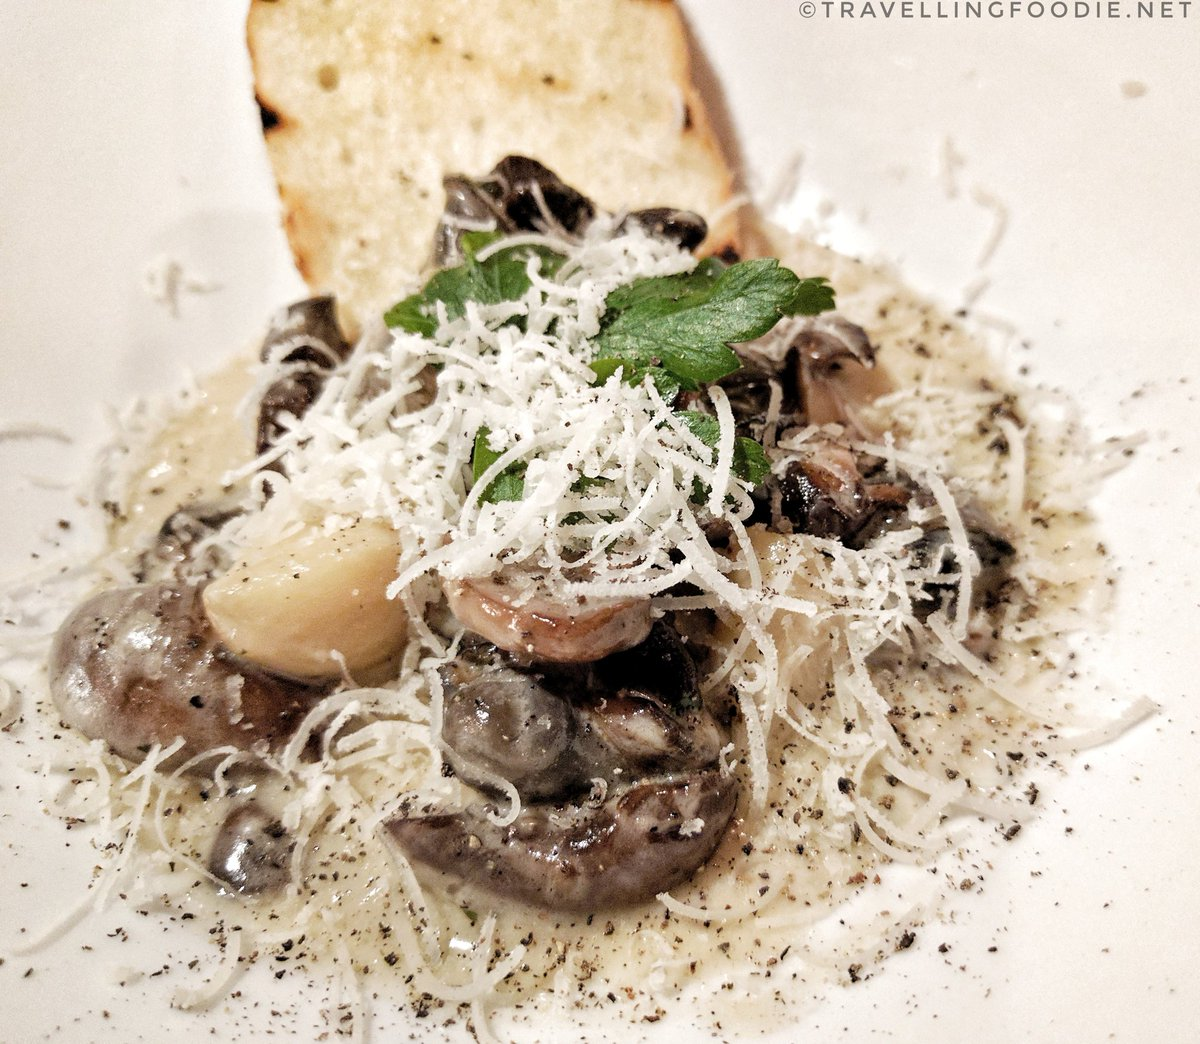 Escargot & Mushrooms at Fellini's, Stratford, Ontario